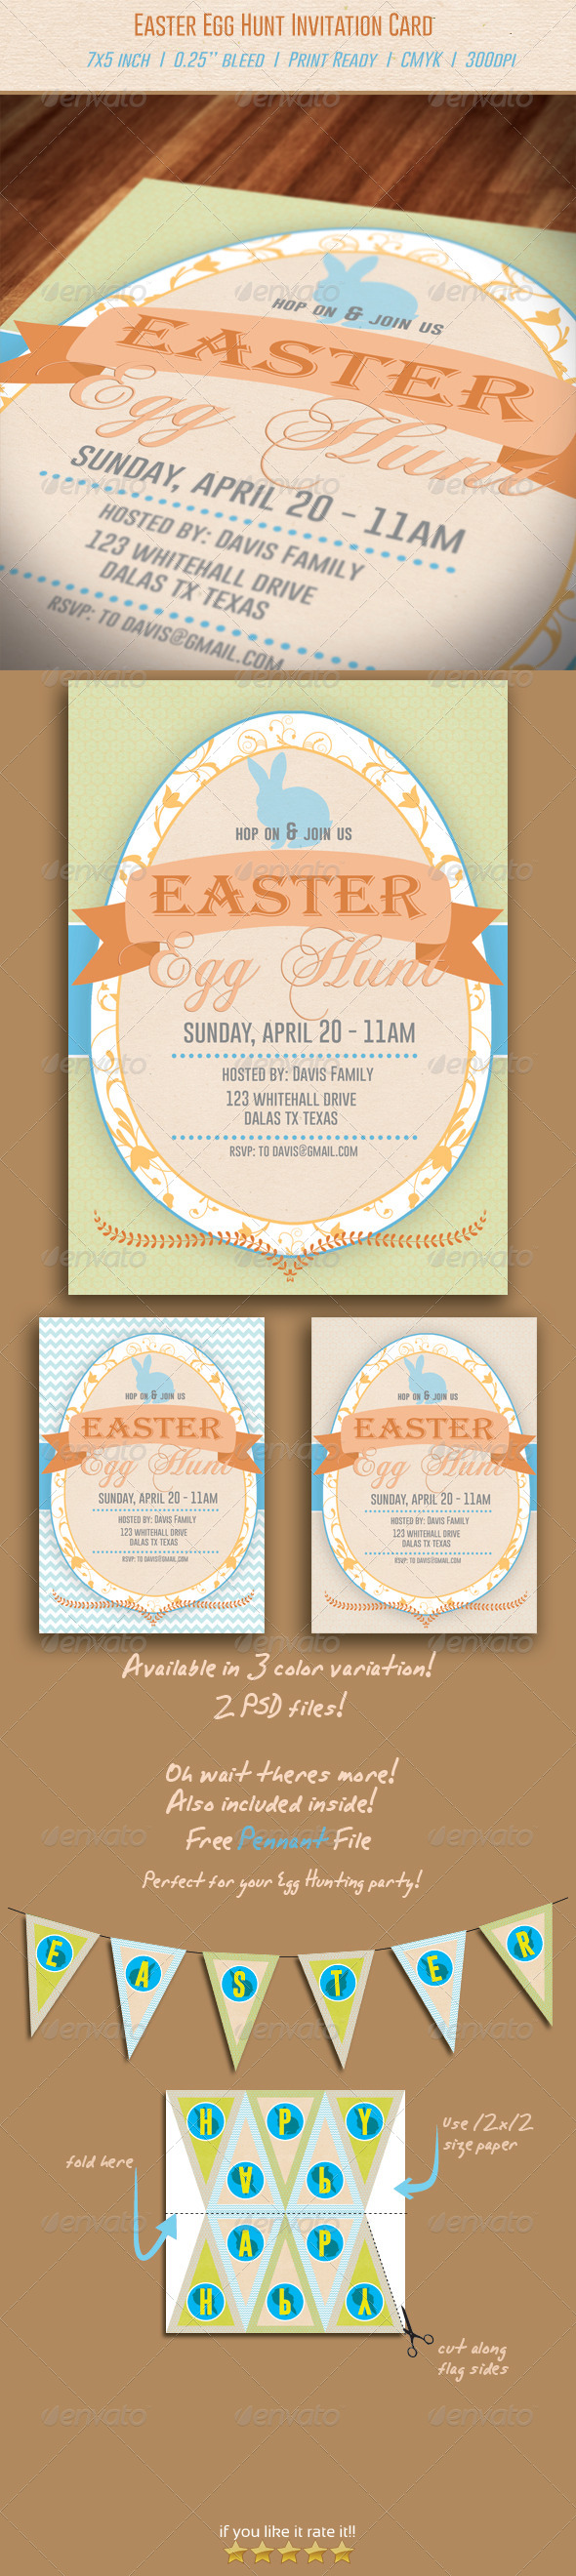 Easter Egg Hunt Invitation - Invitations Cards & Invites